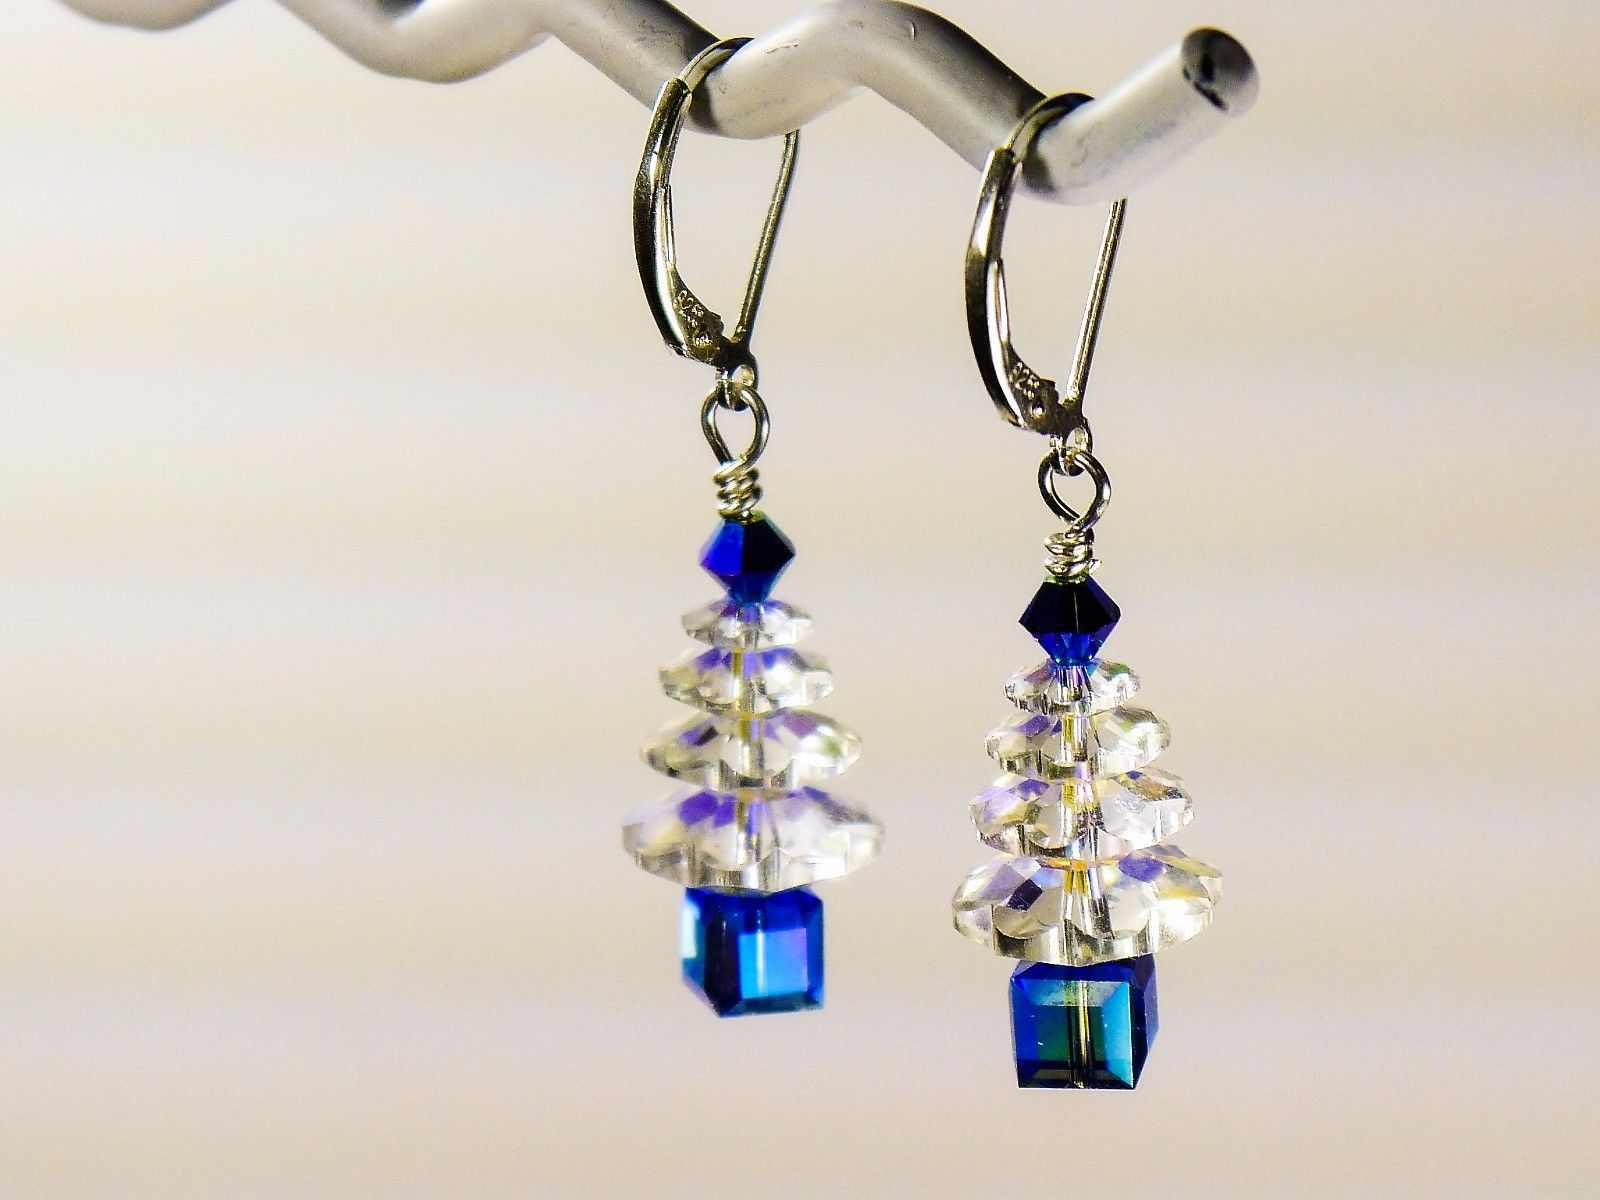 Christmas Tree Earrings / Blue/ made w/ Swarovski Crystals / 925 Sterling